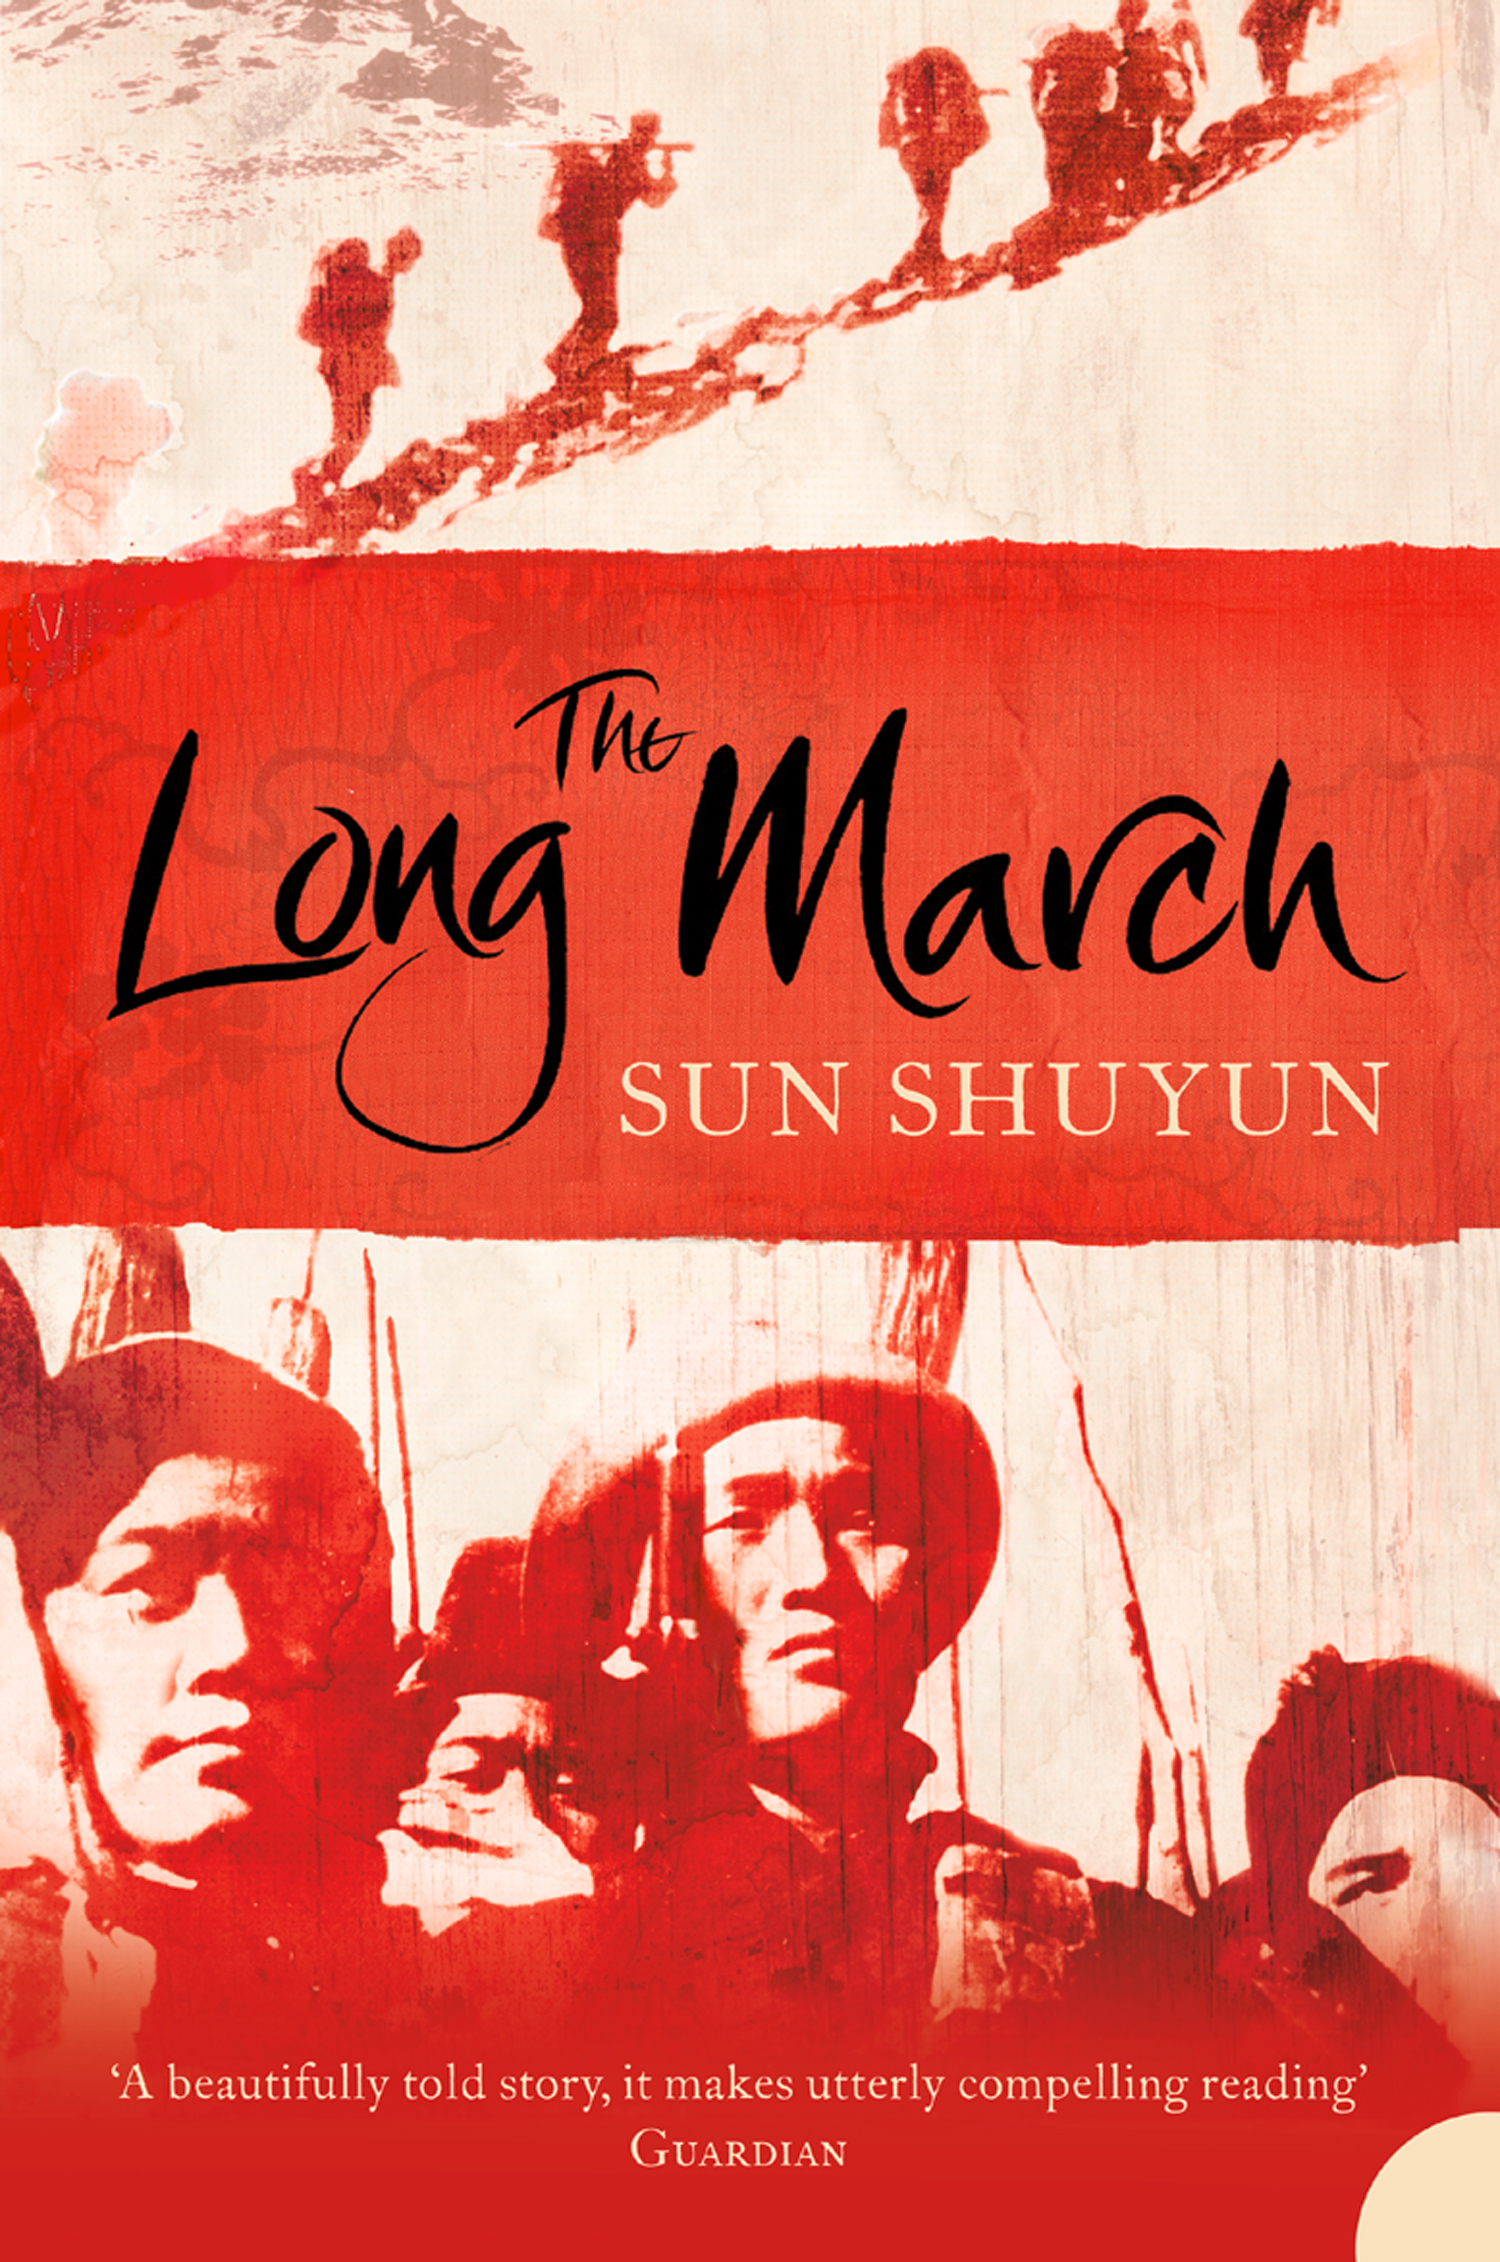 The Long March by Shun Shuyun